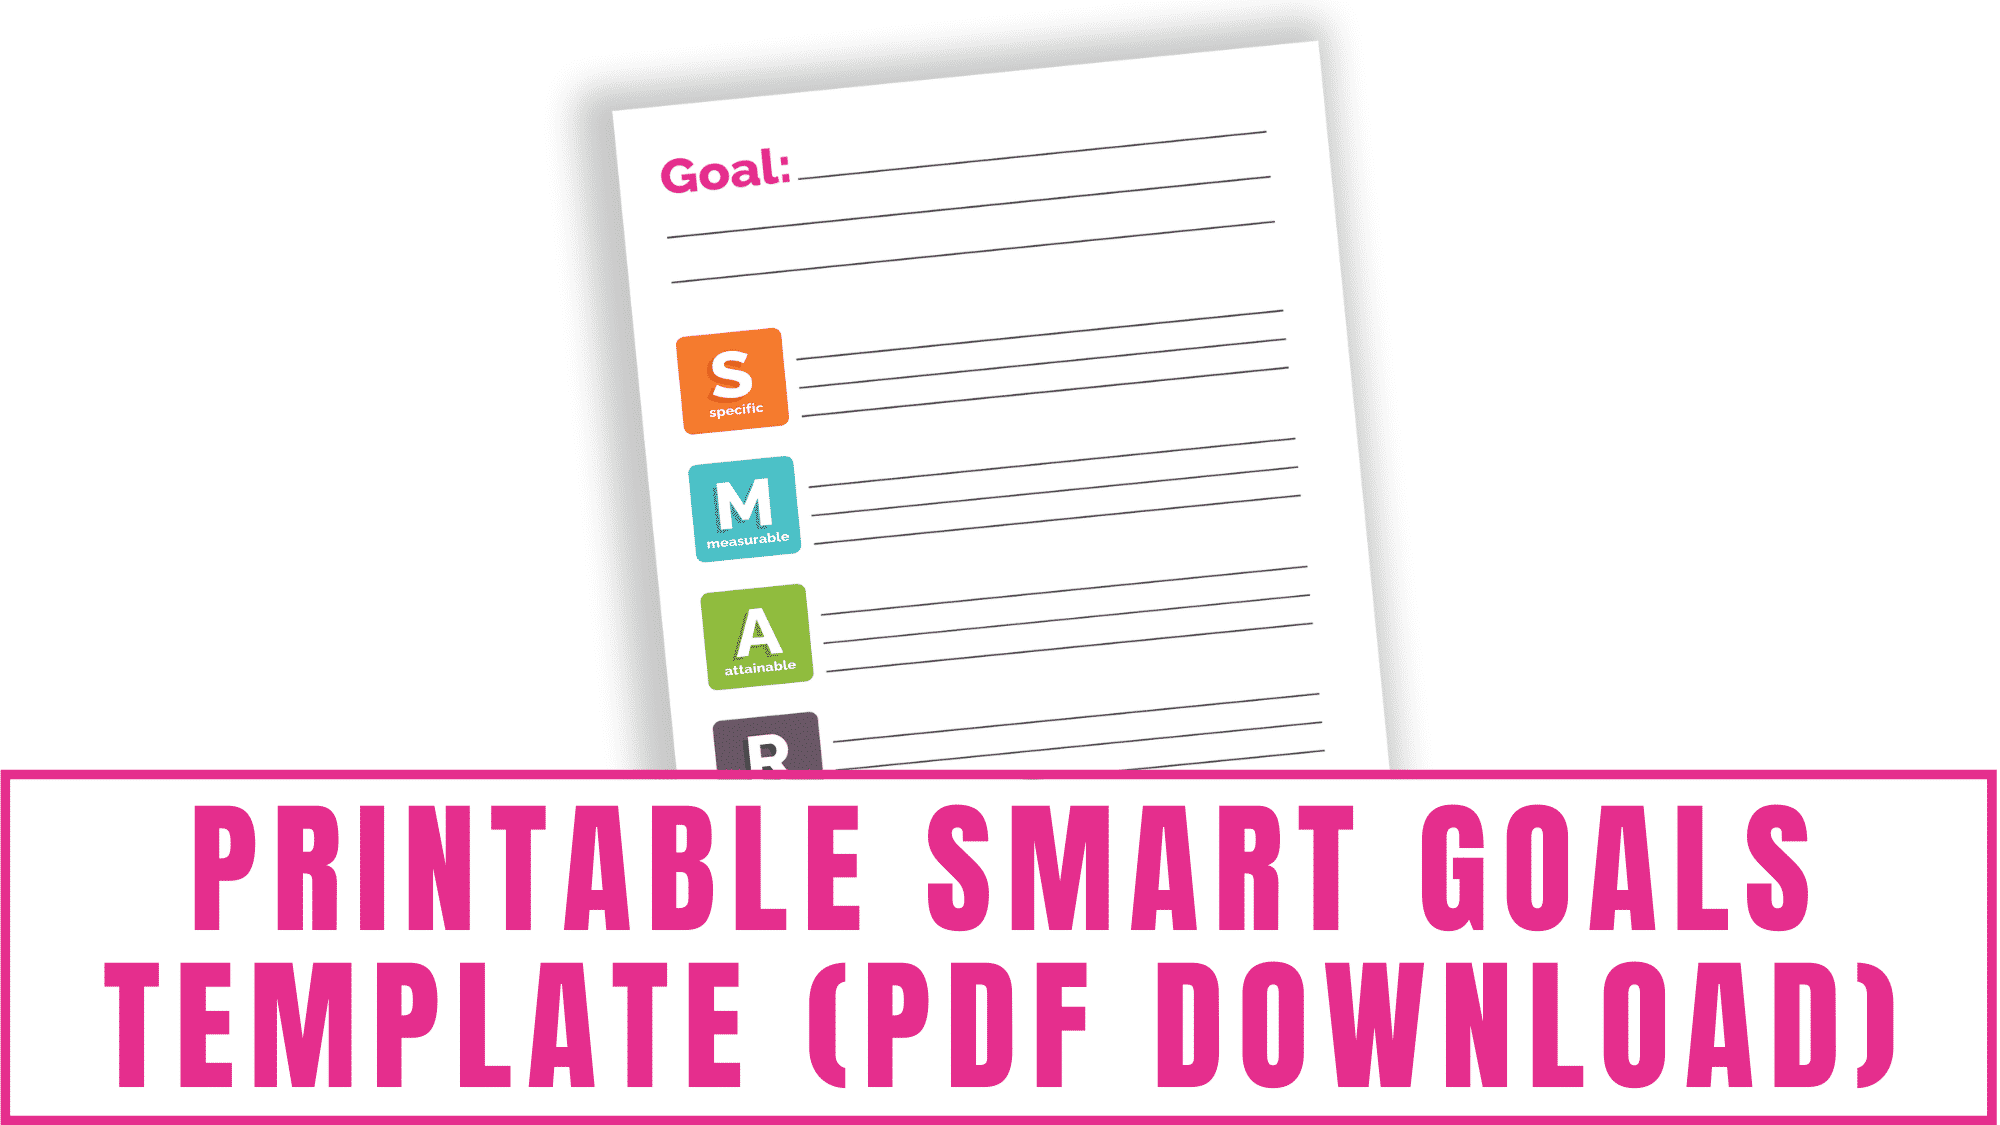 Set yourself up for success with SMART goal setting. Use this printable smart goals template pdf download to help you get started.